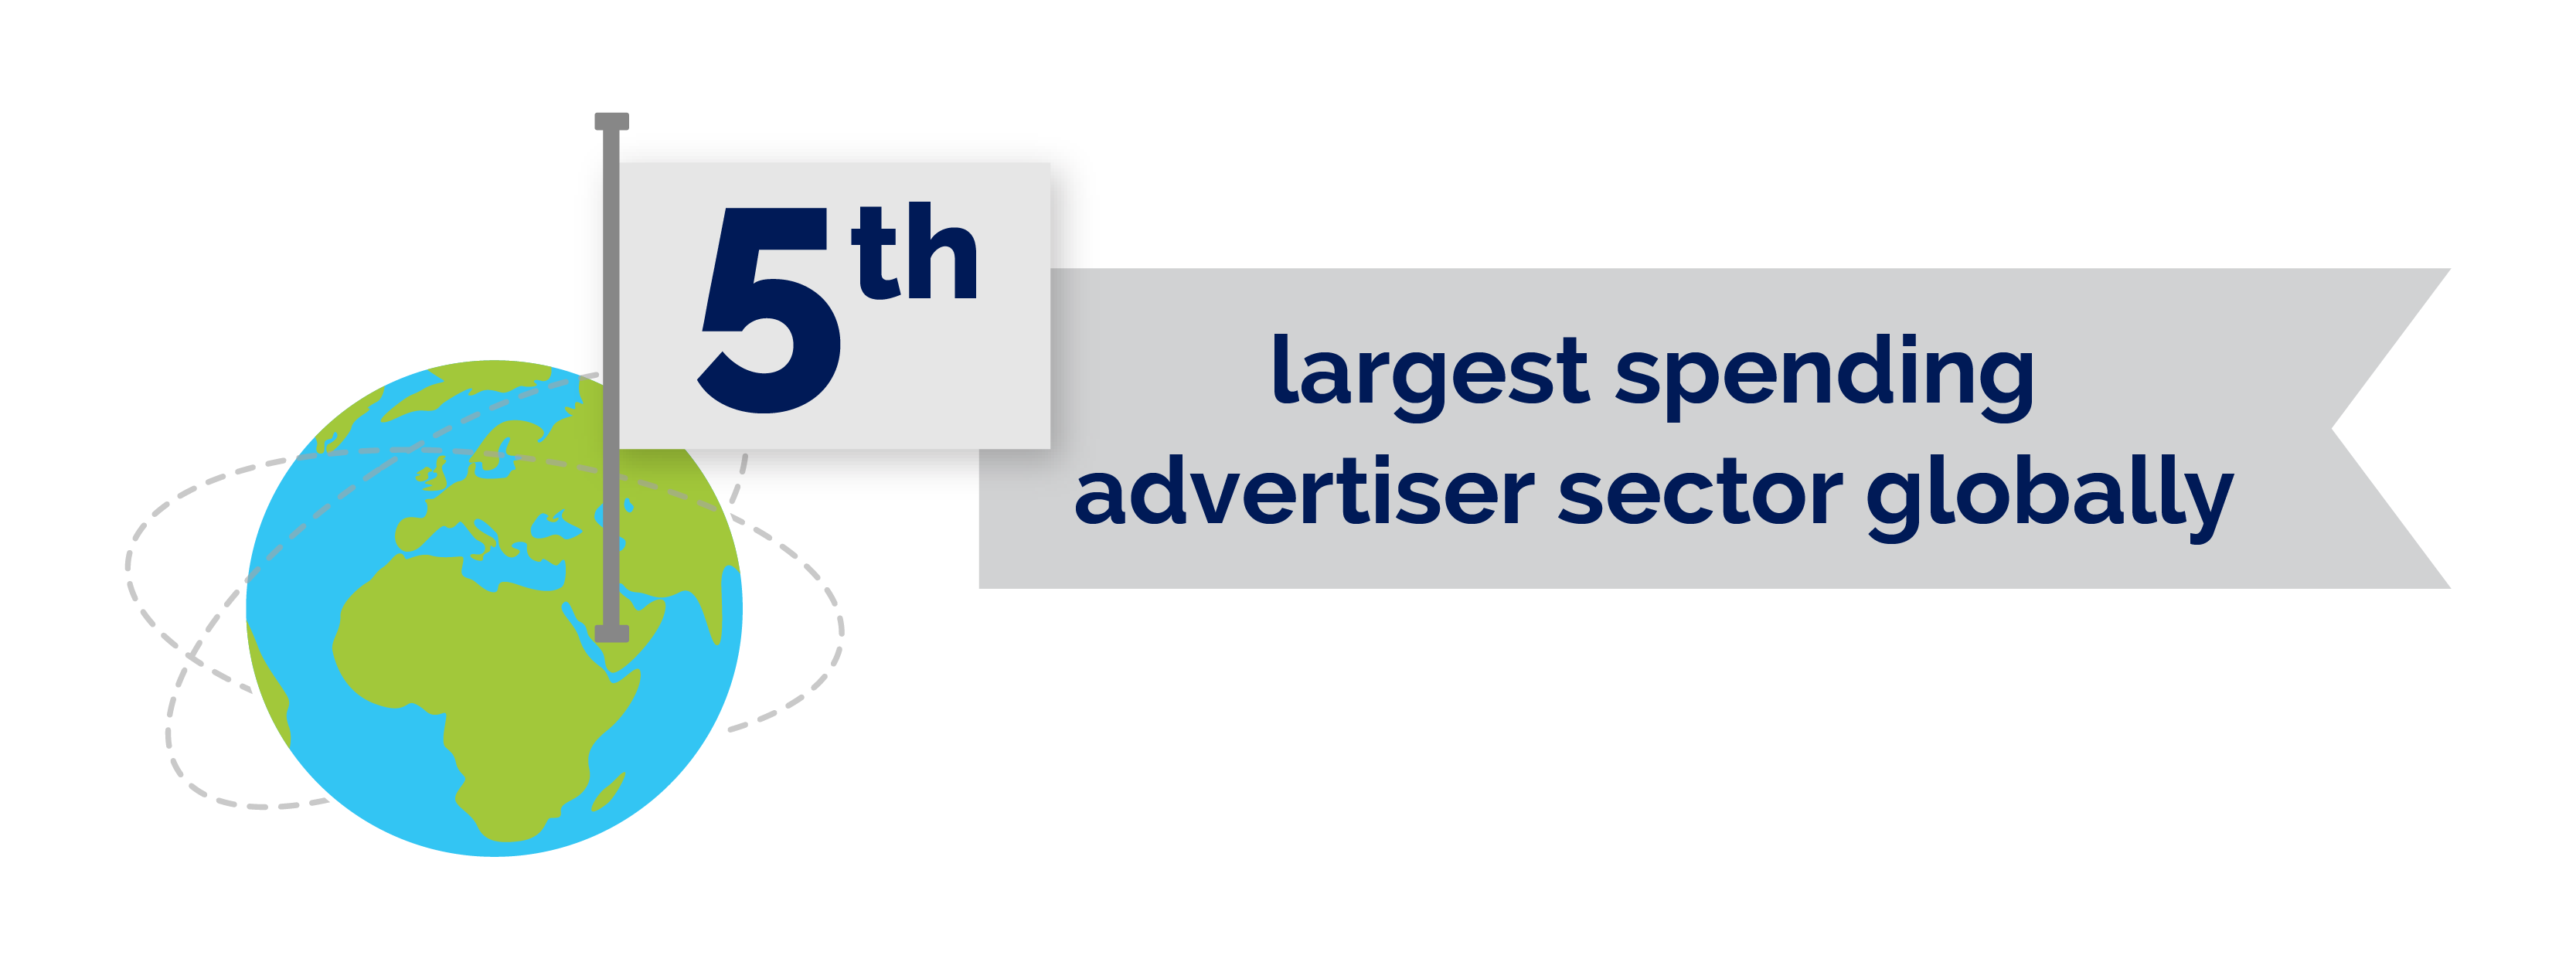 FMCG 5th largest spending advertiser sector